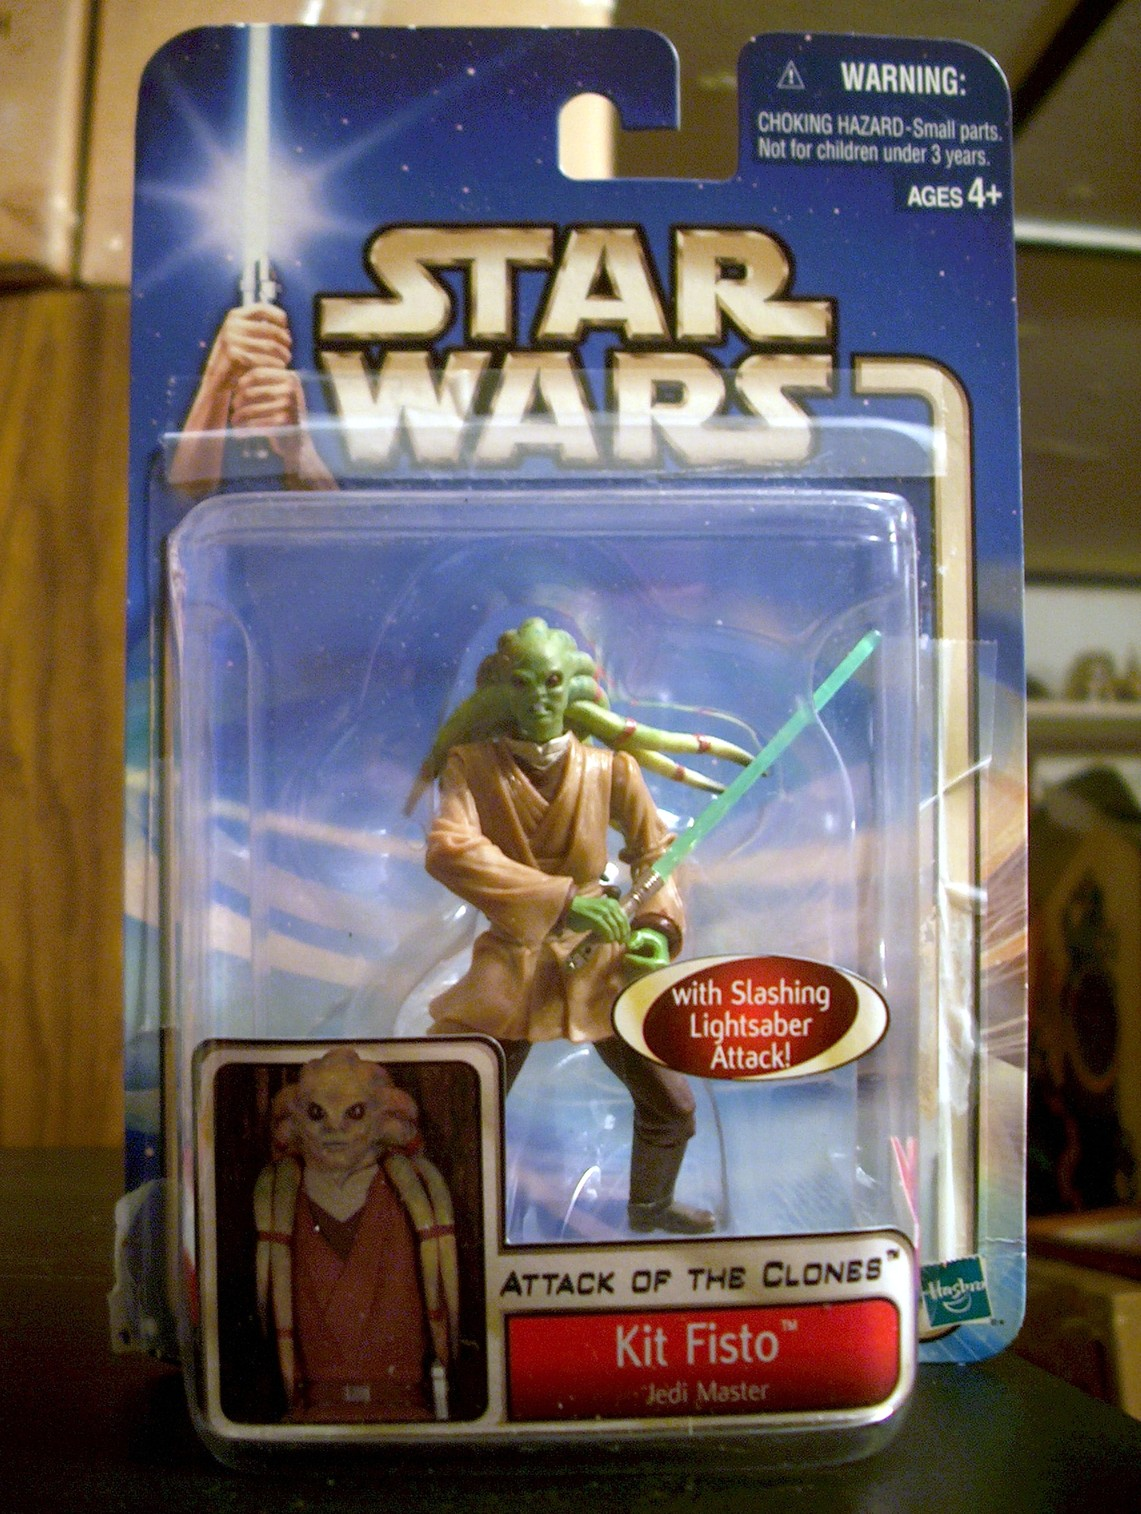 Kit Fisto - Jedi Master with Force Action!